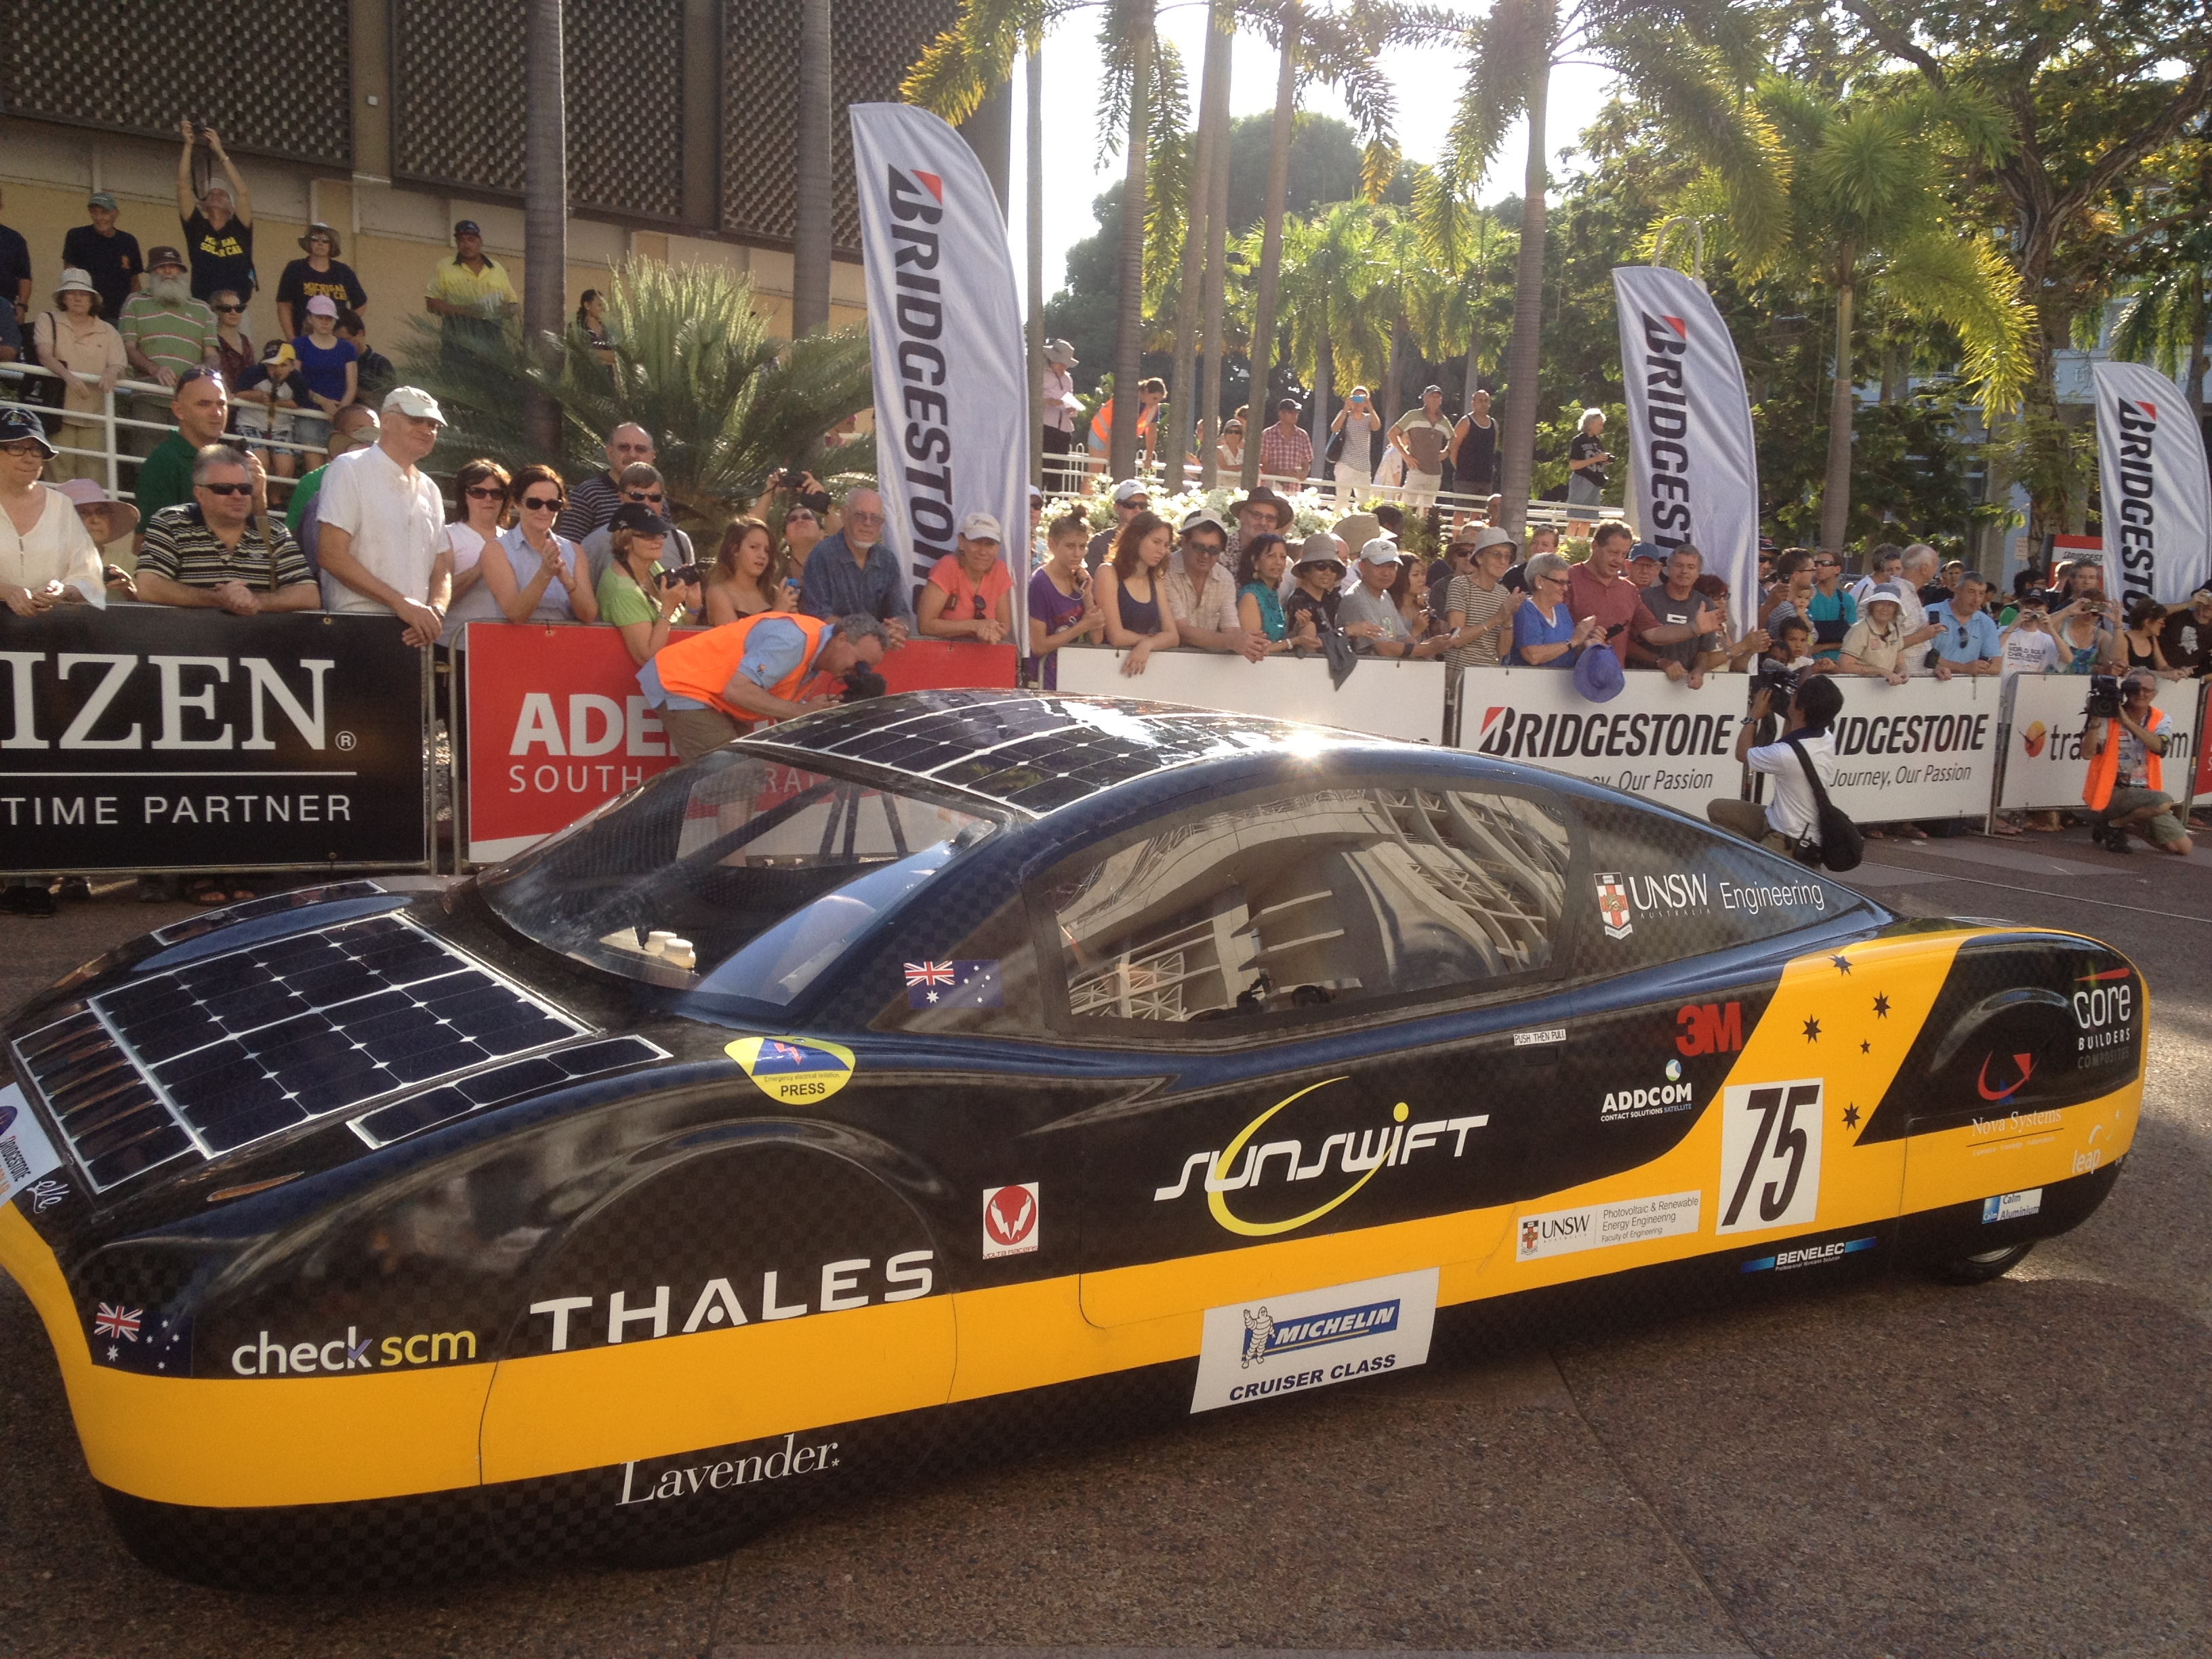 WSC2013-EVE of UNSW Solar Racing Team-Sunswift of Univ of NSW